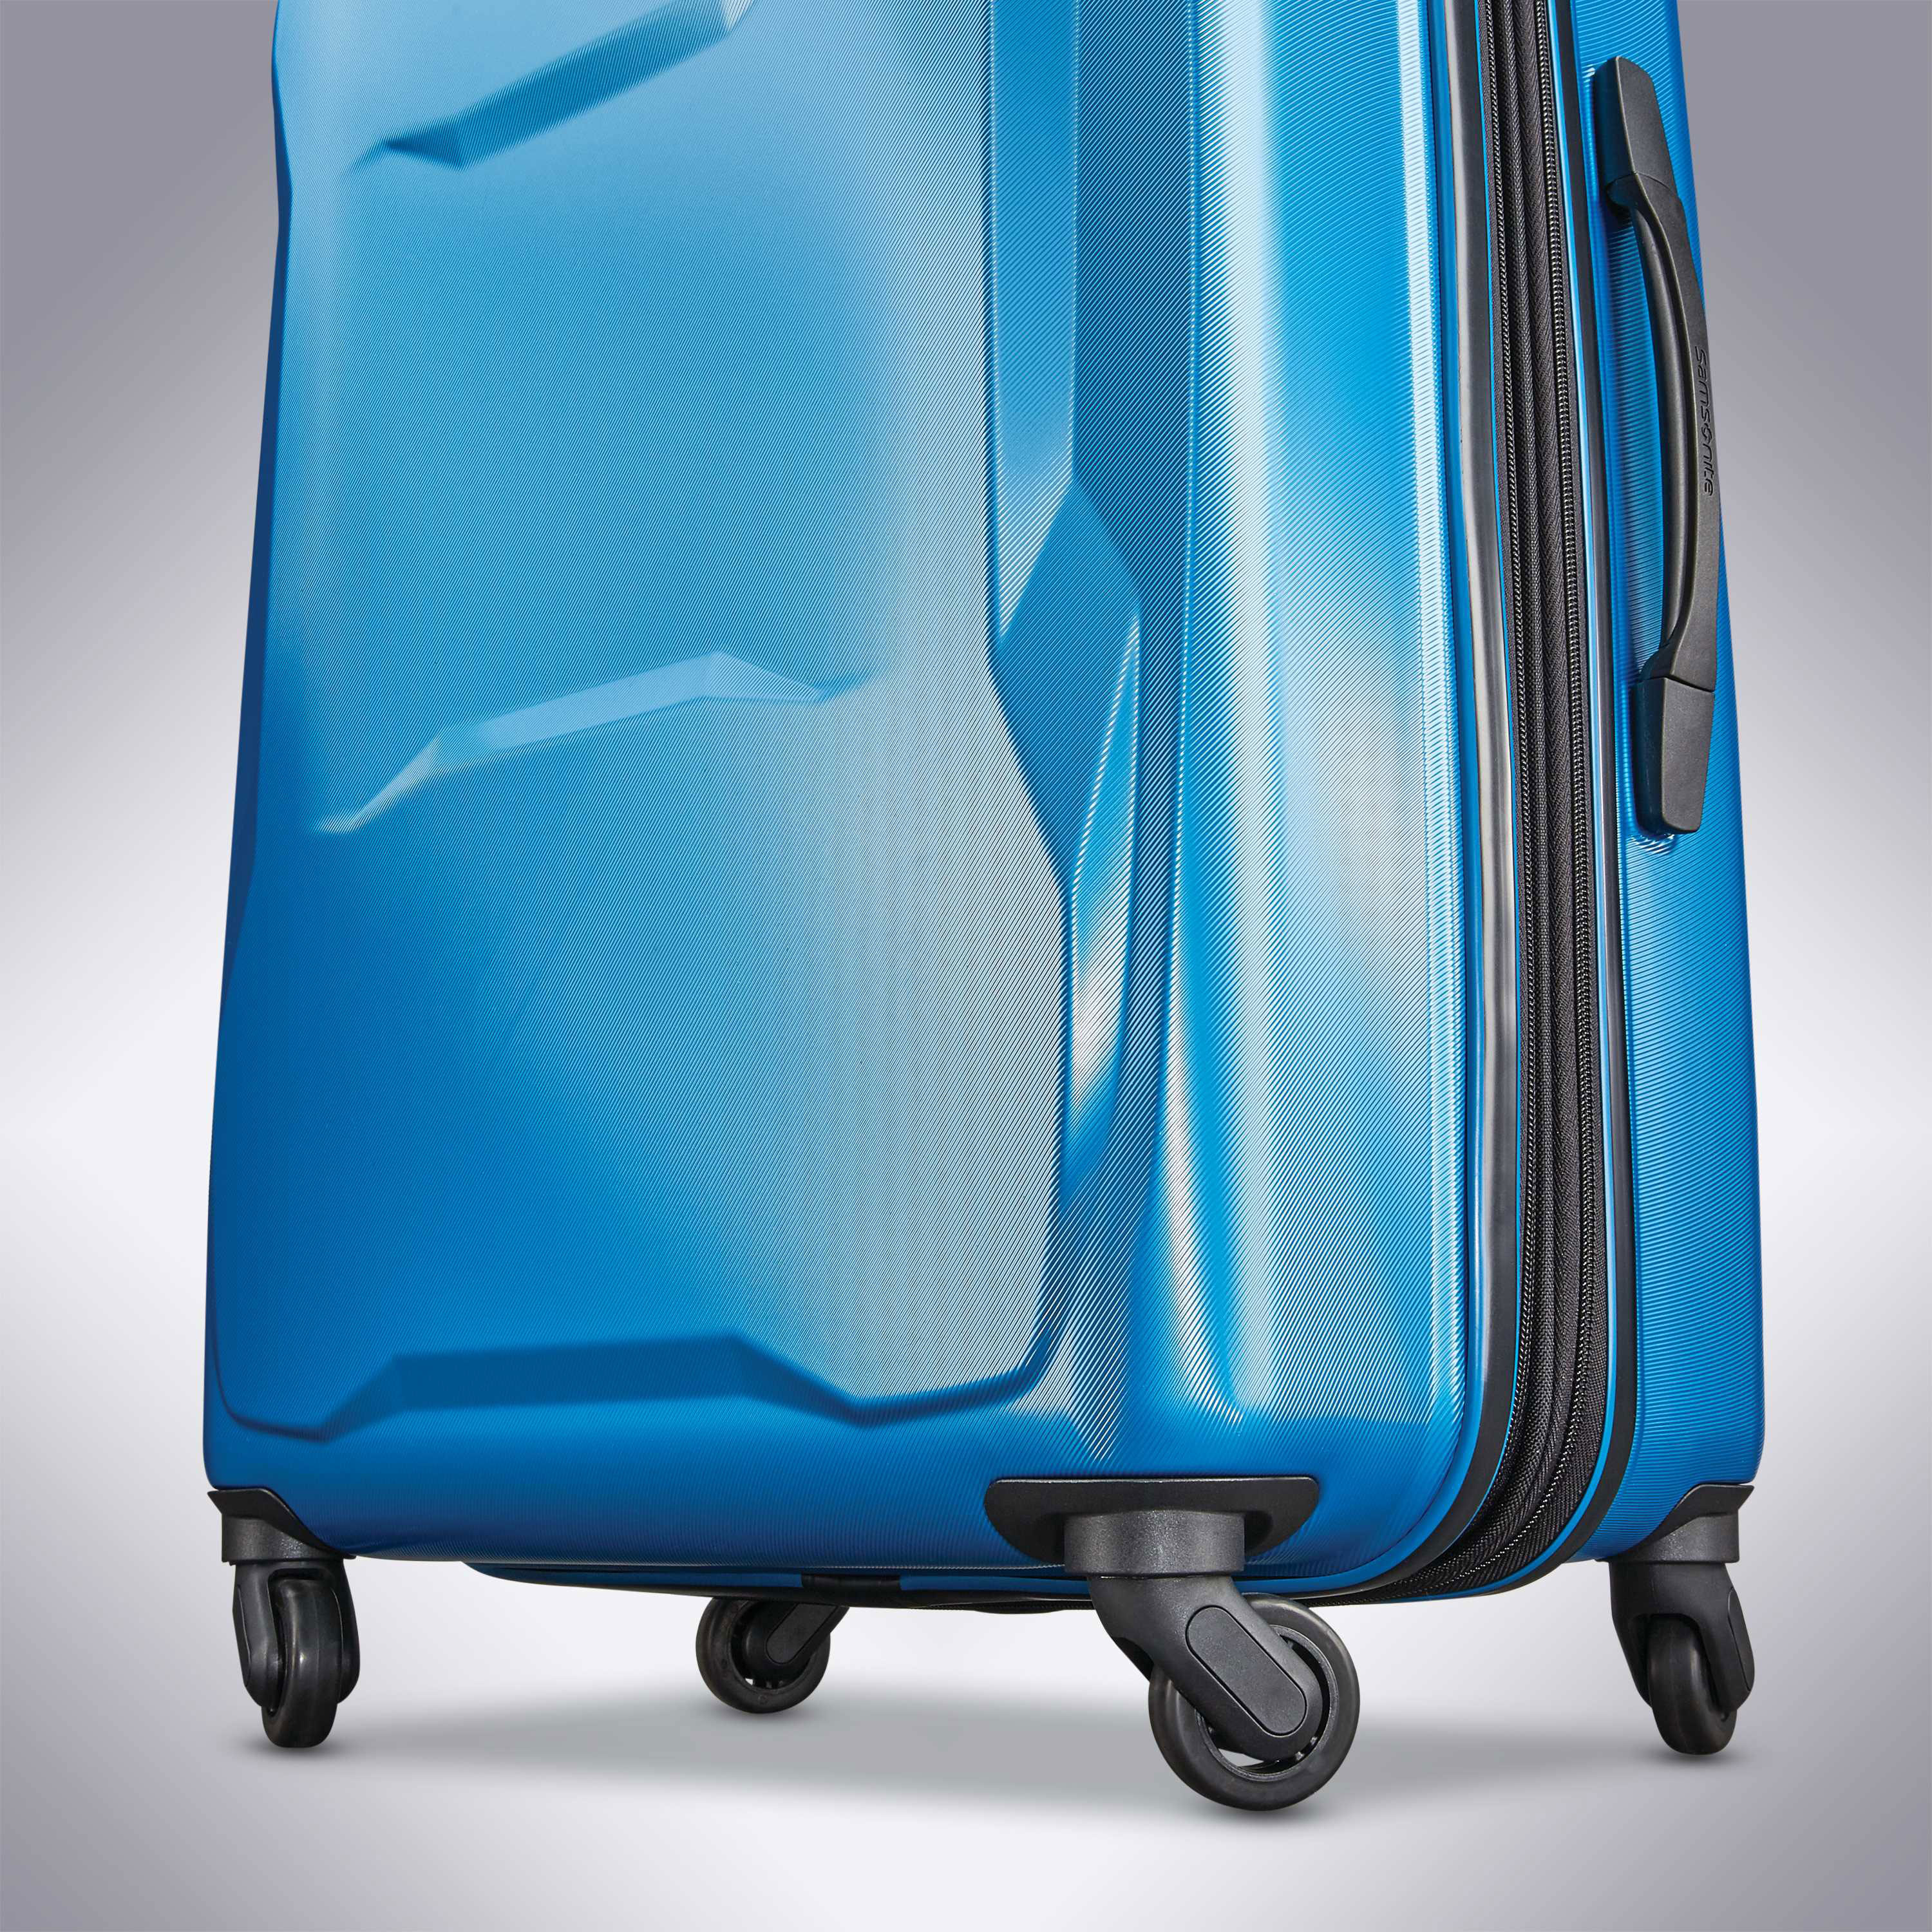 Samsonite-Pivot-3-Piece-Set-Luggage thumbnail 19